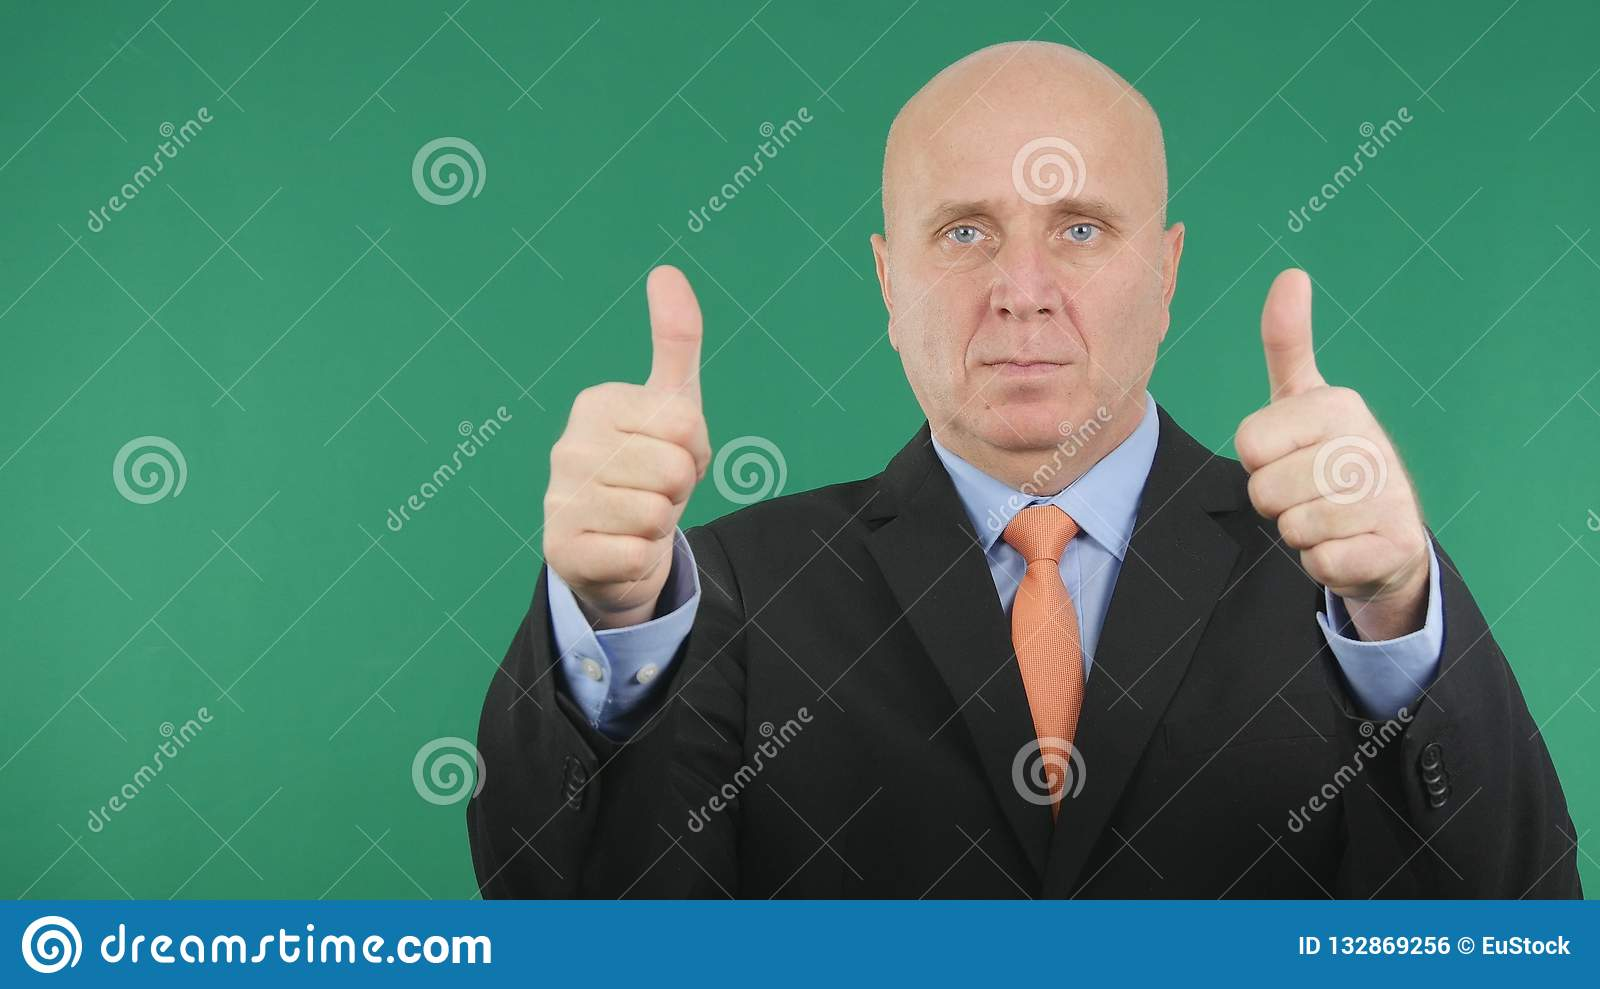 Serious Businessman Make Double Thumbs Up a Good Job Hand Gestures.